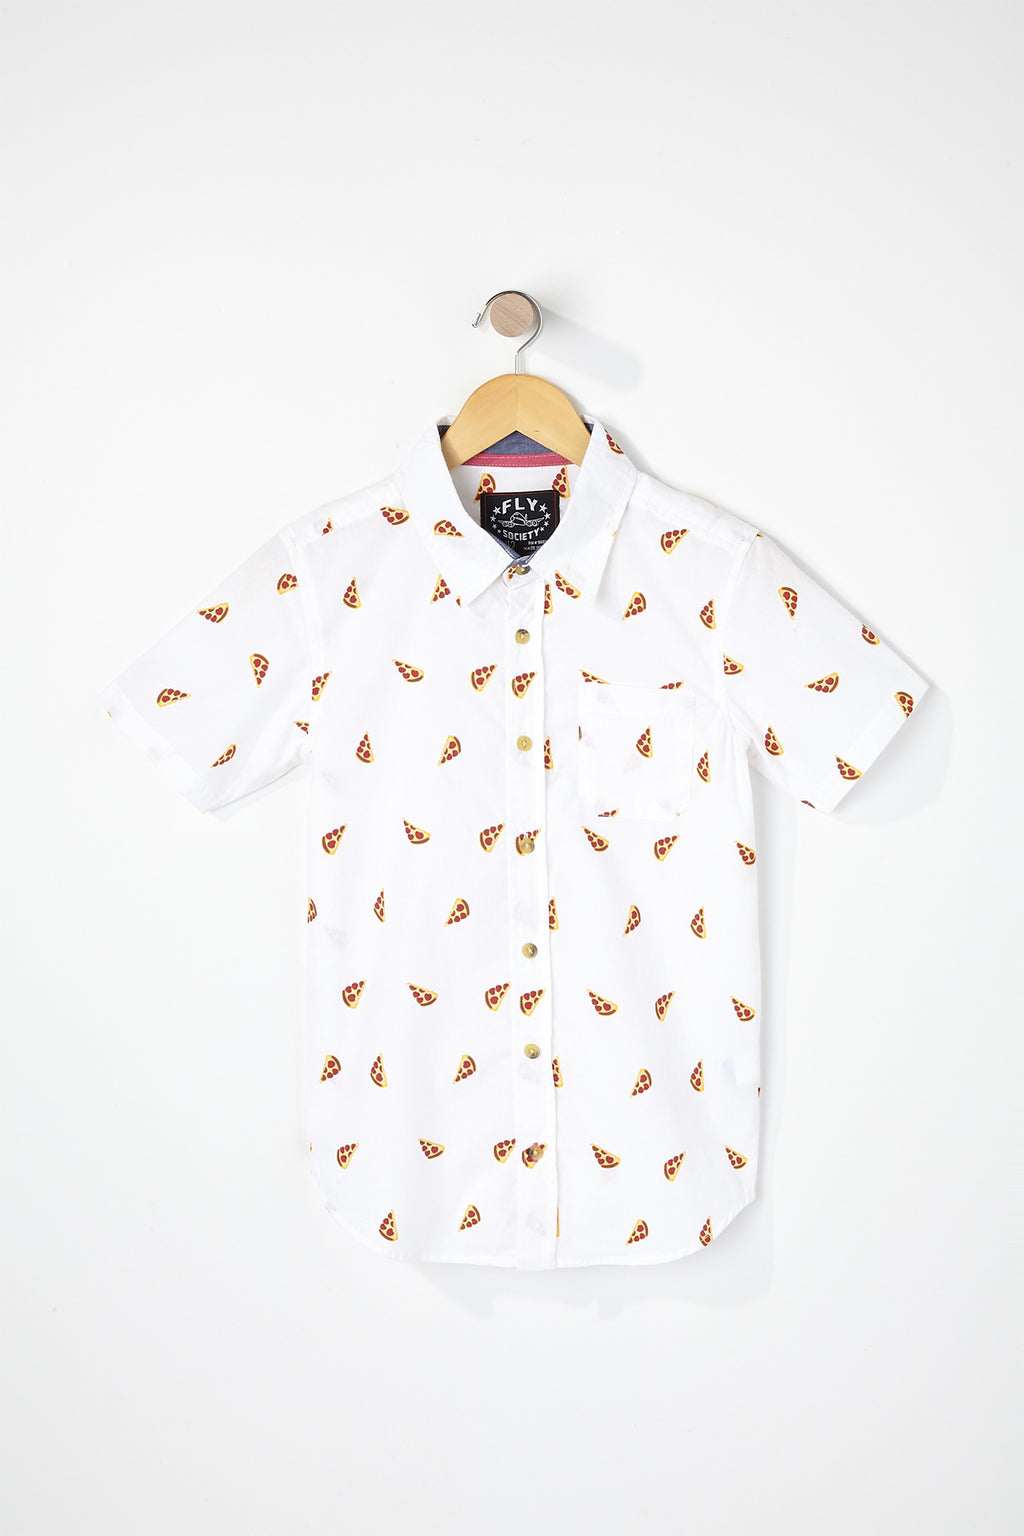 West49 Boys Pizza Button Up Shirt